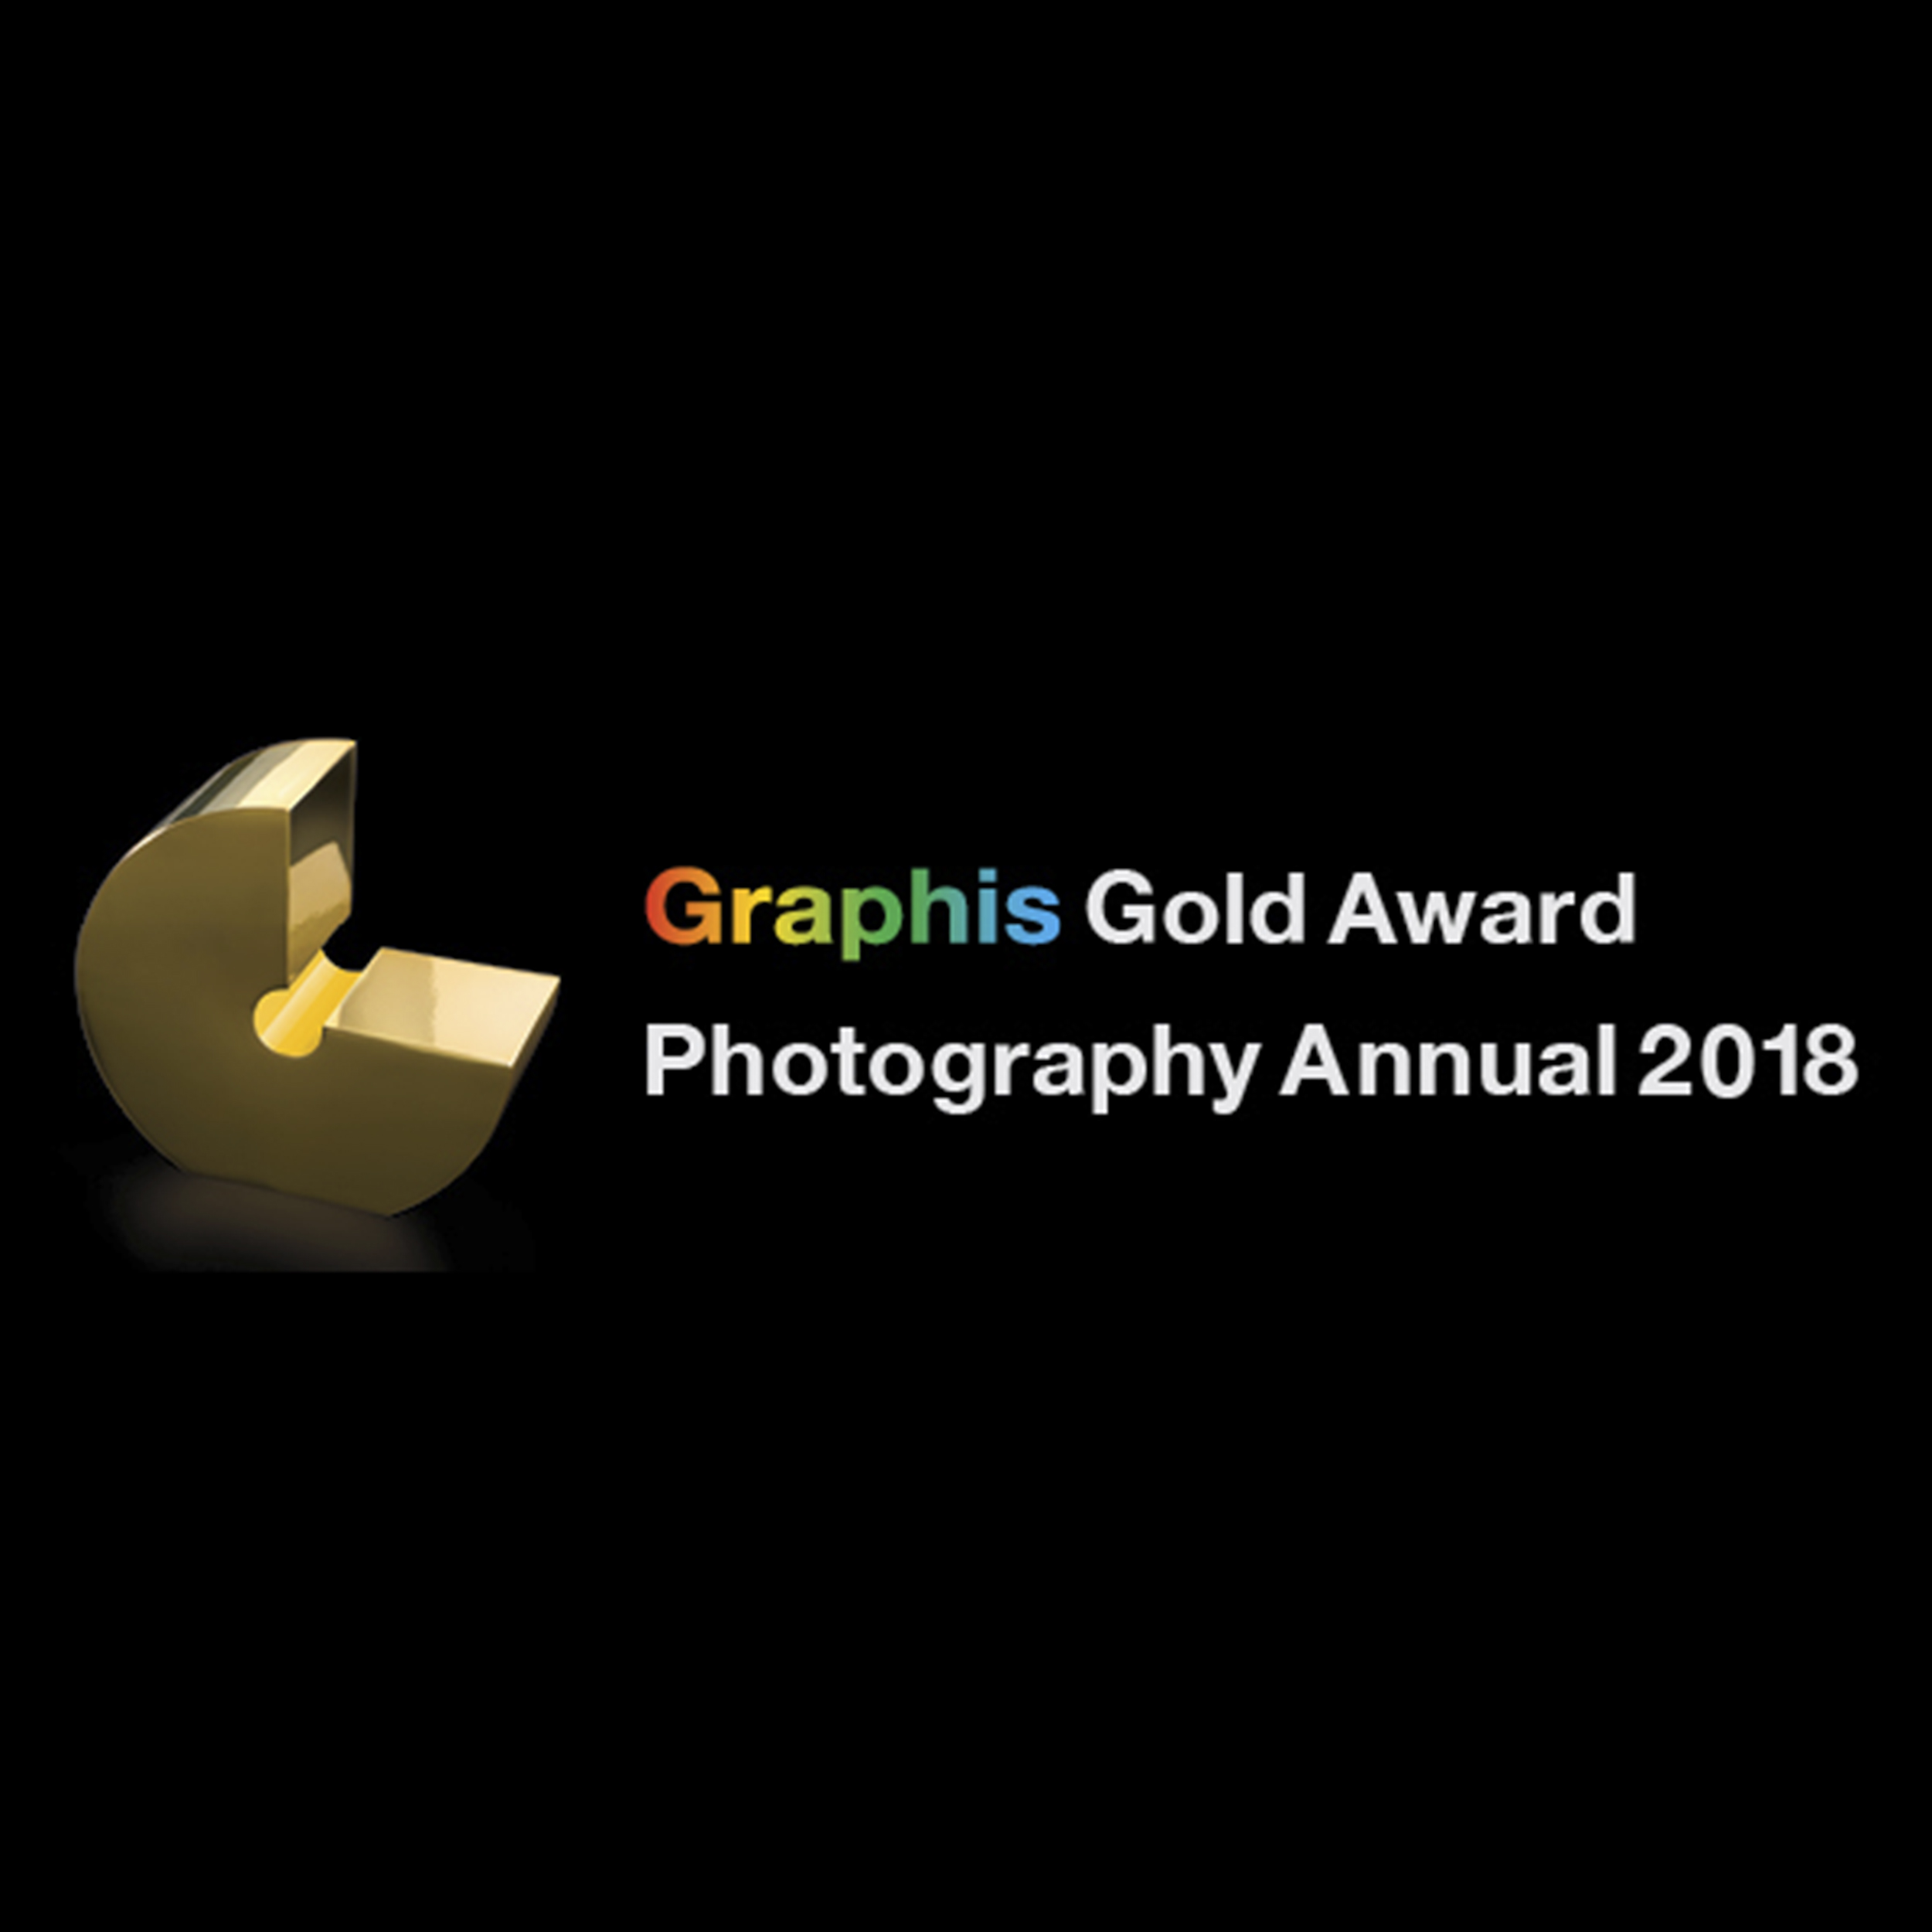 Graphis Photo Annual 2018_Gold.jpg